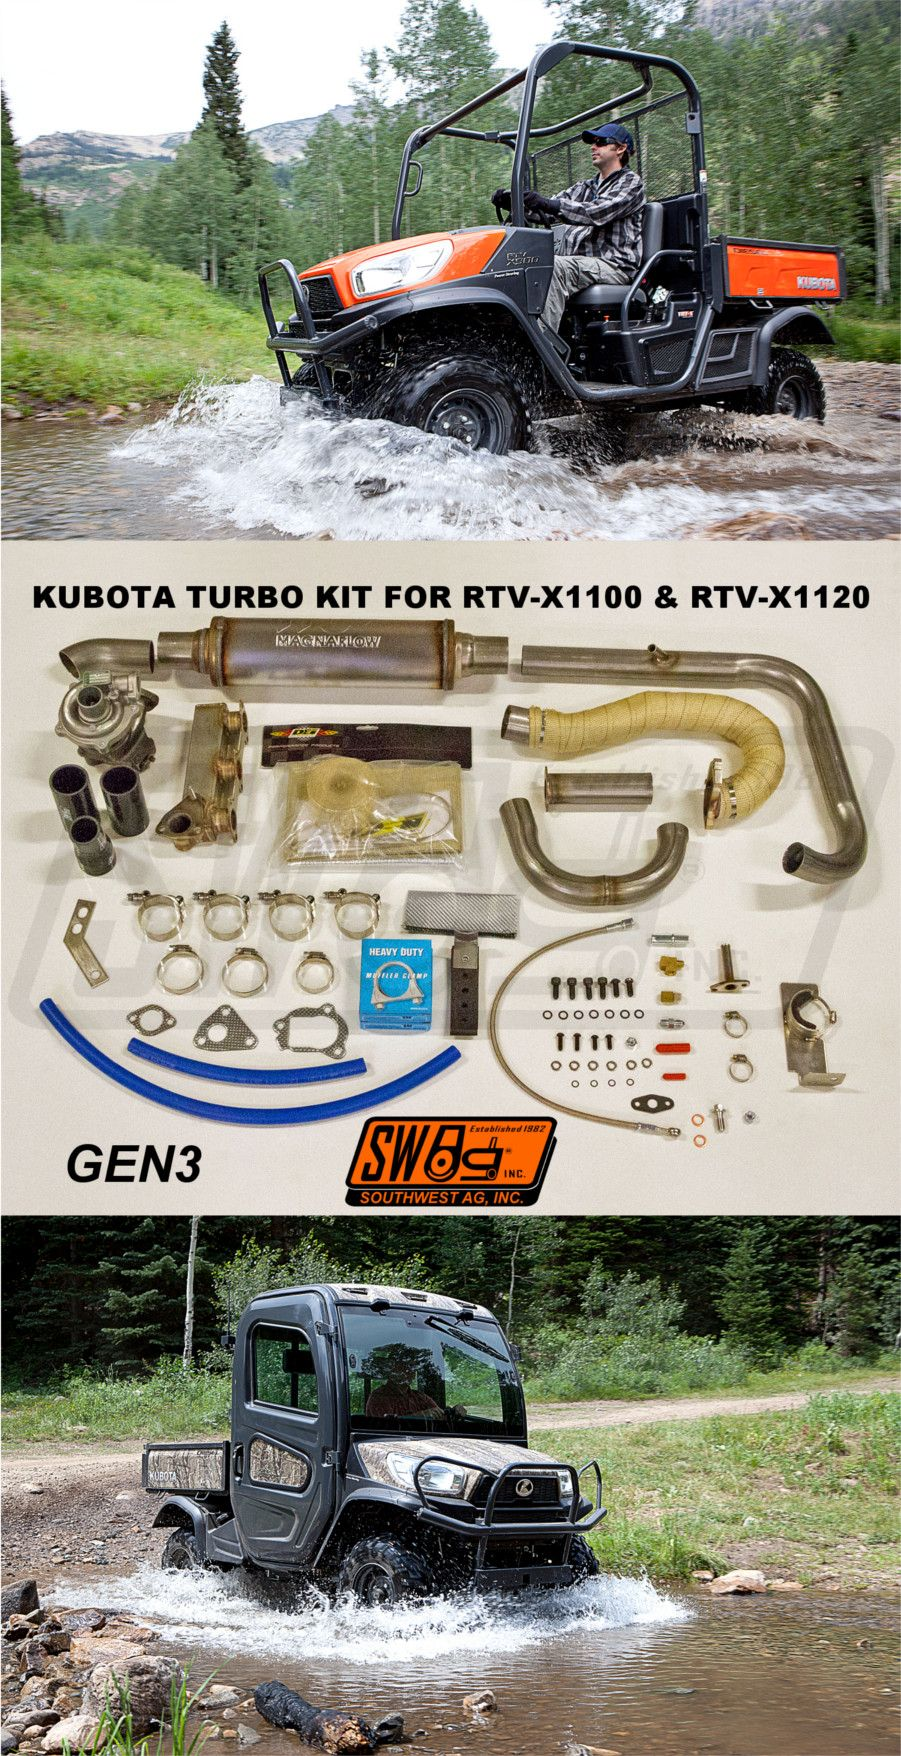 3rd Generation Turbo Kit for the Kubota RTV-X series utility vehicle.